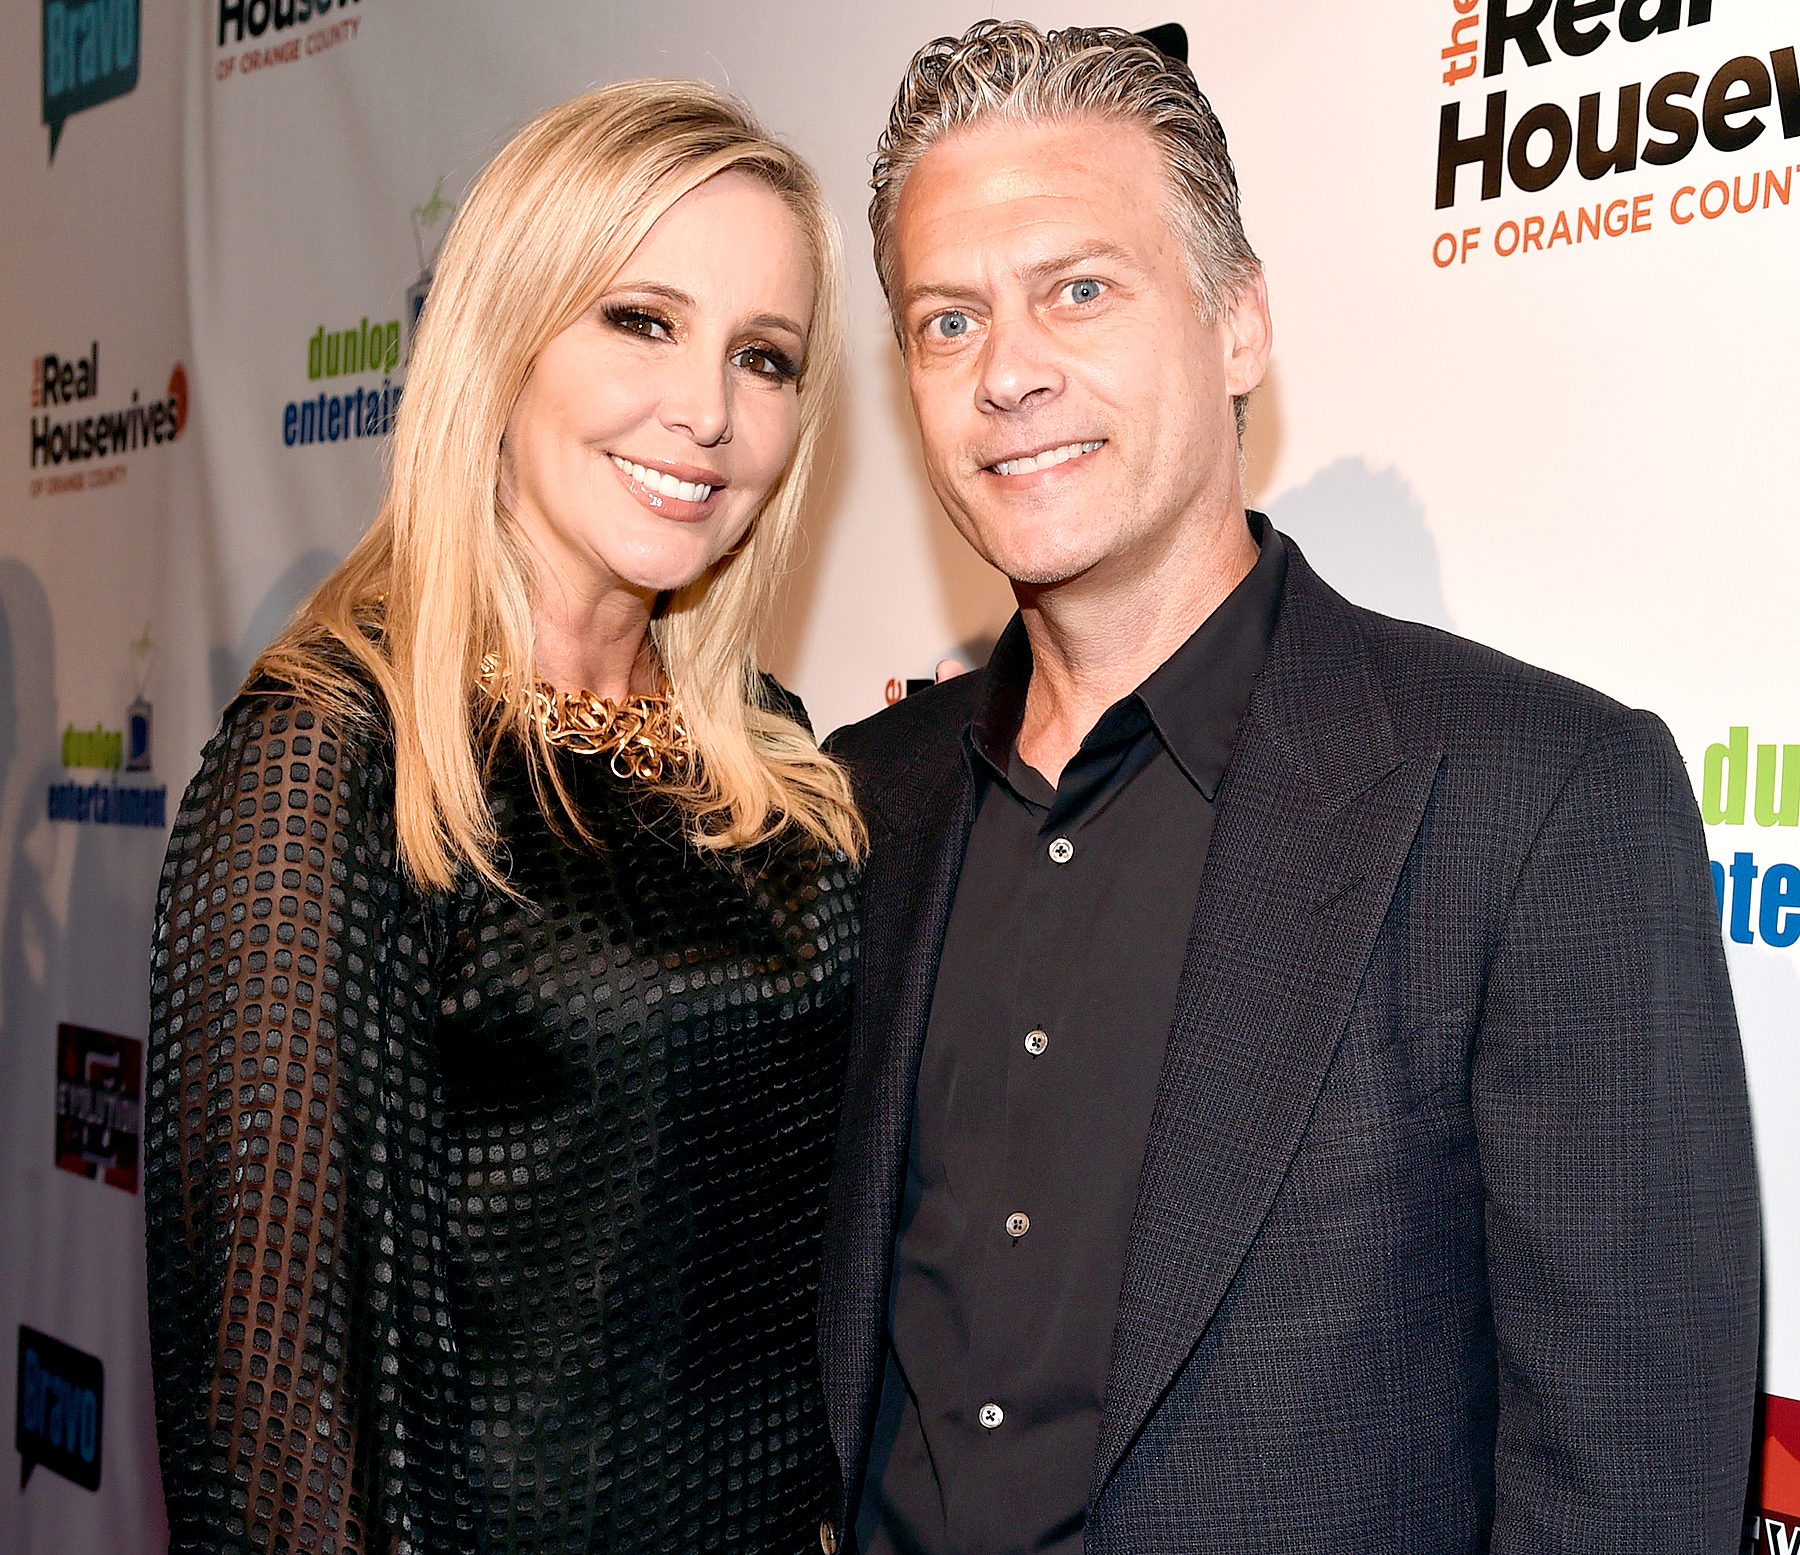 Shannon Beador and David Beador attend the premiere party for Bravo's